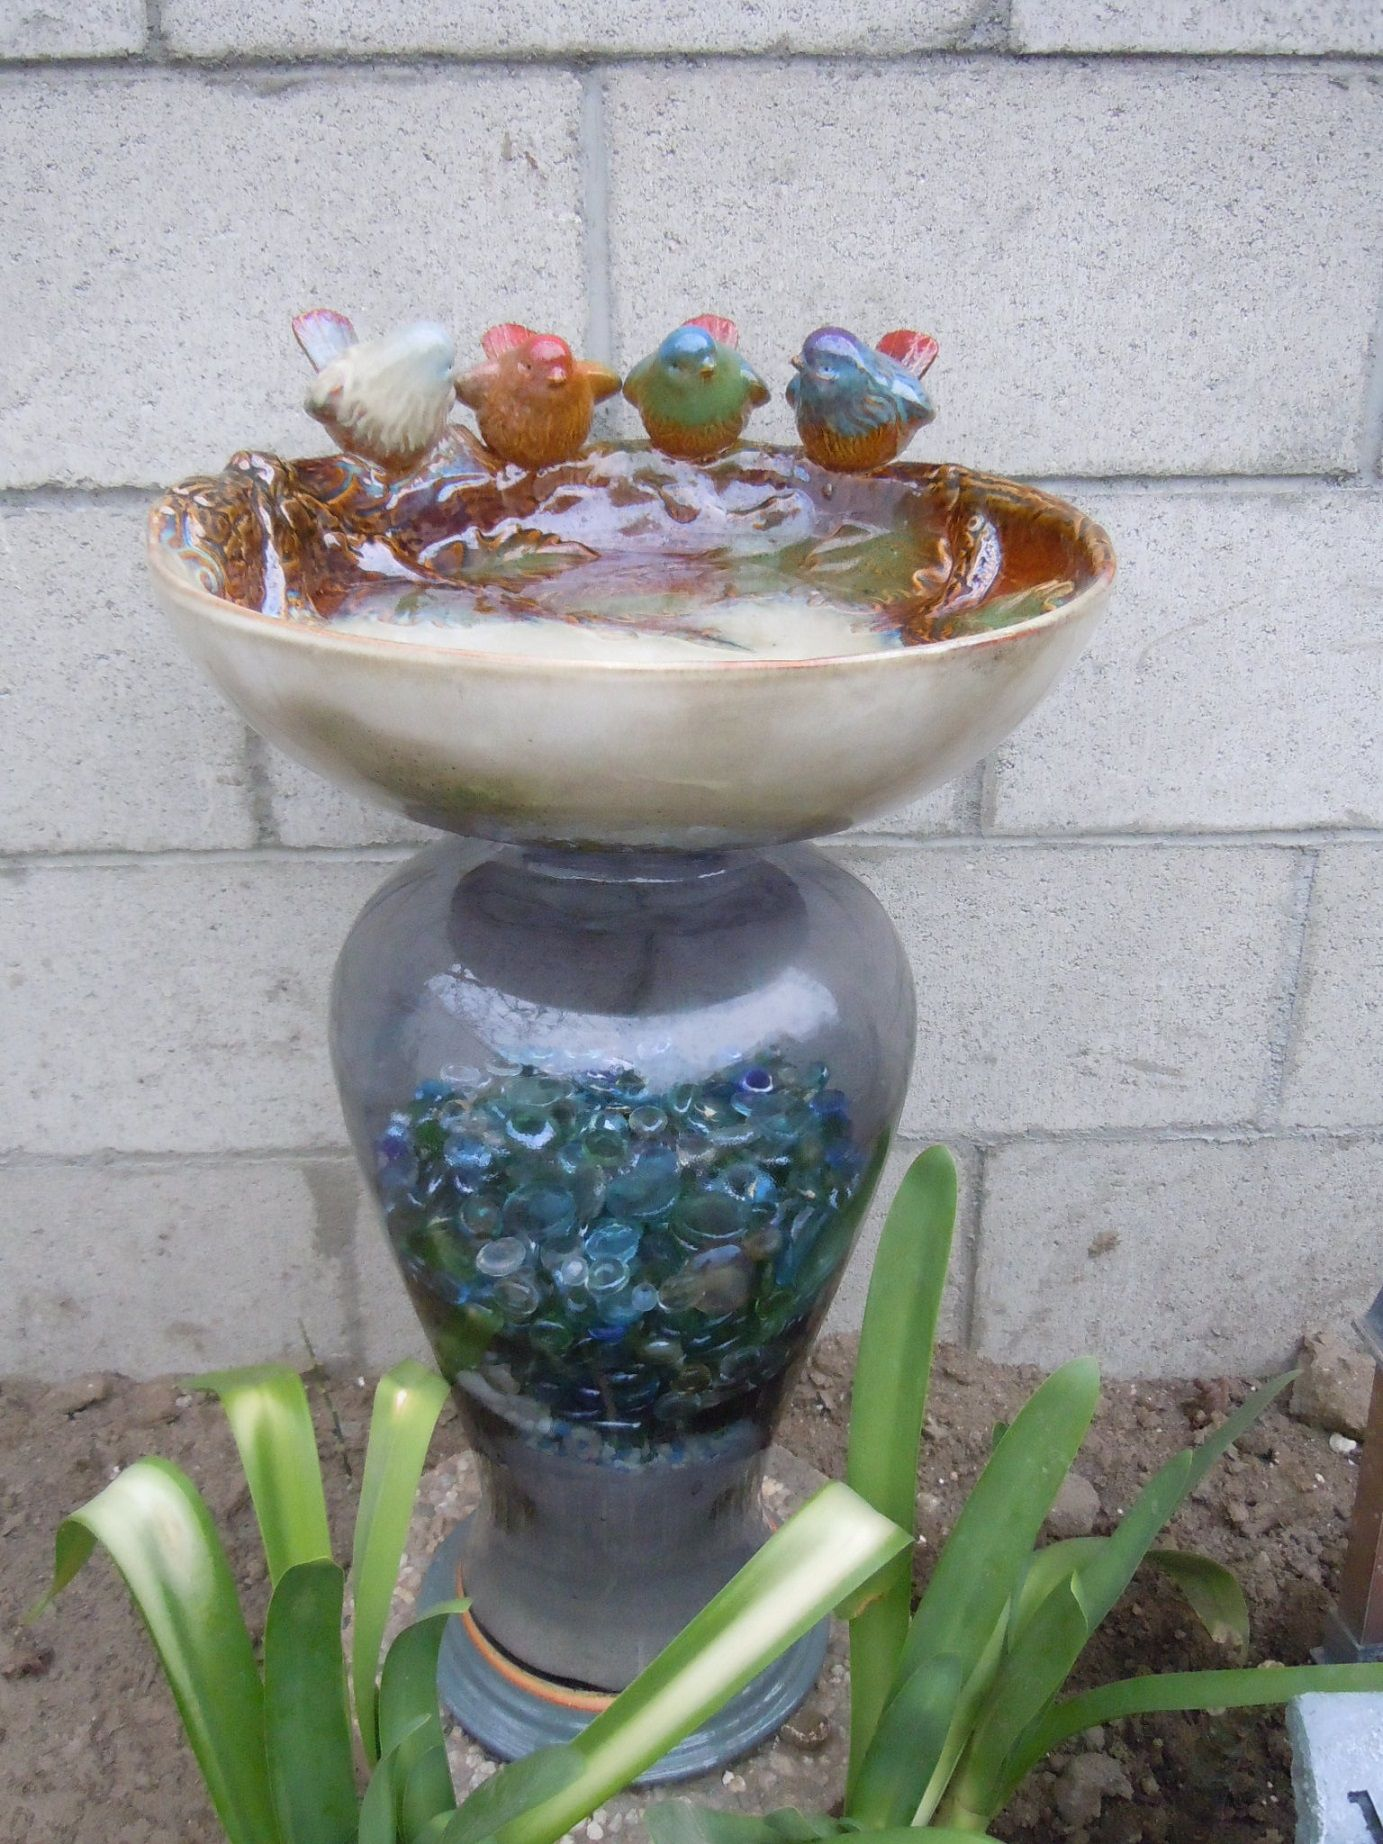 I got the vase from my mother in love, I filled with some sand and glass stones and use it as a base for mi new bird bath.